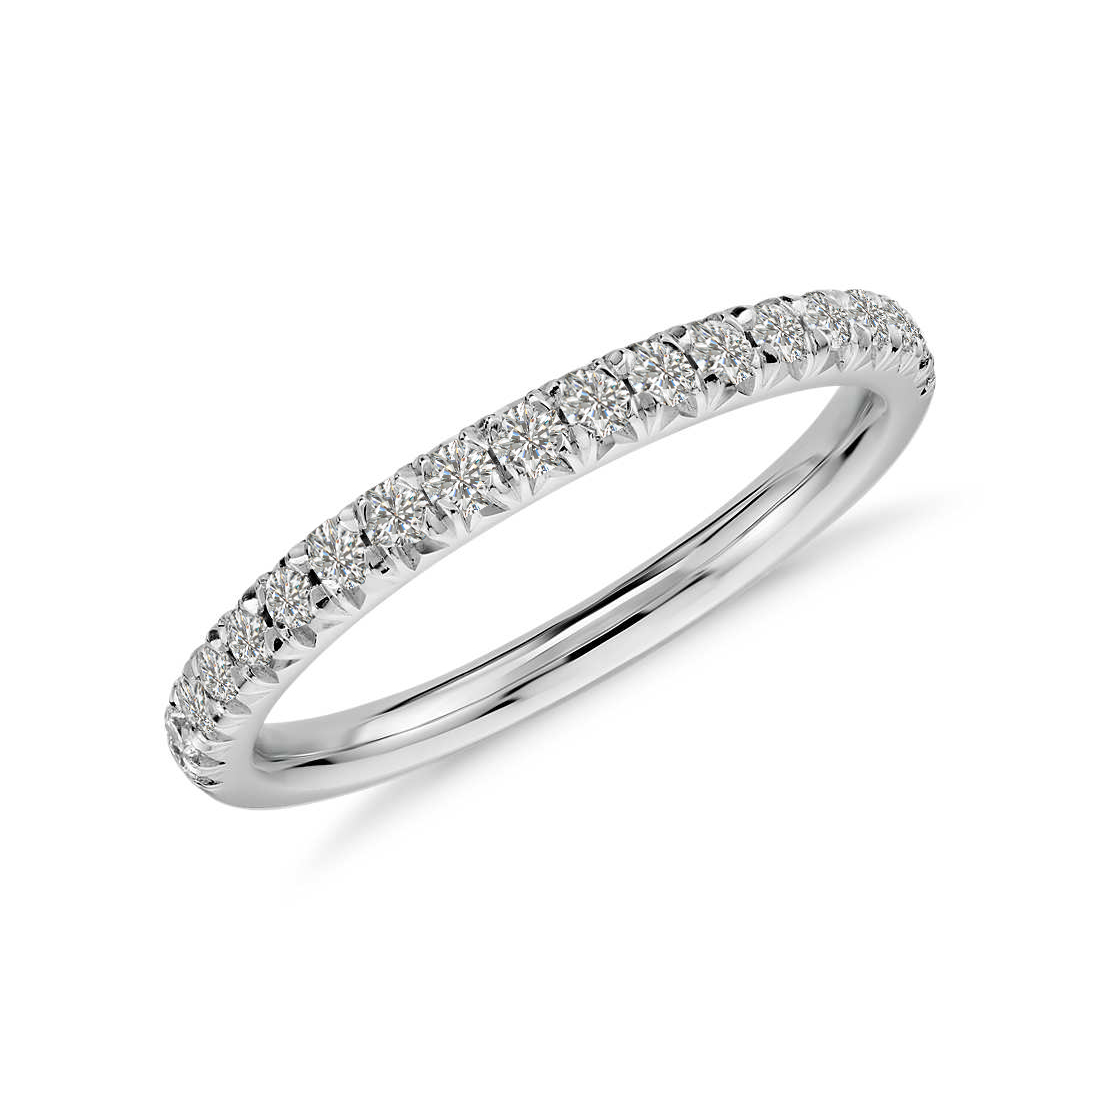 Petite Pave Diamond Ring